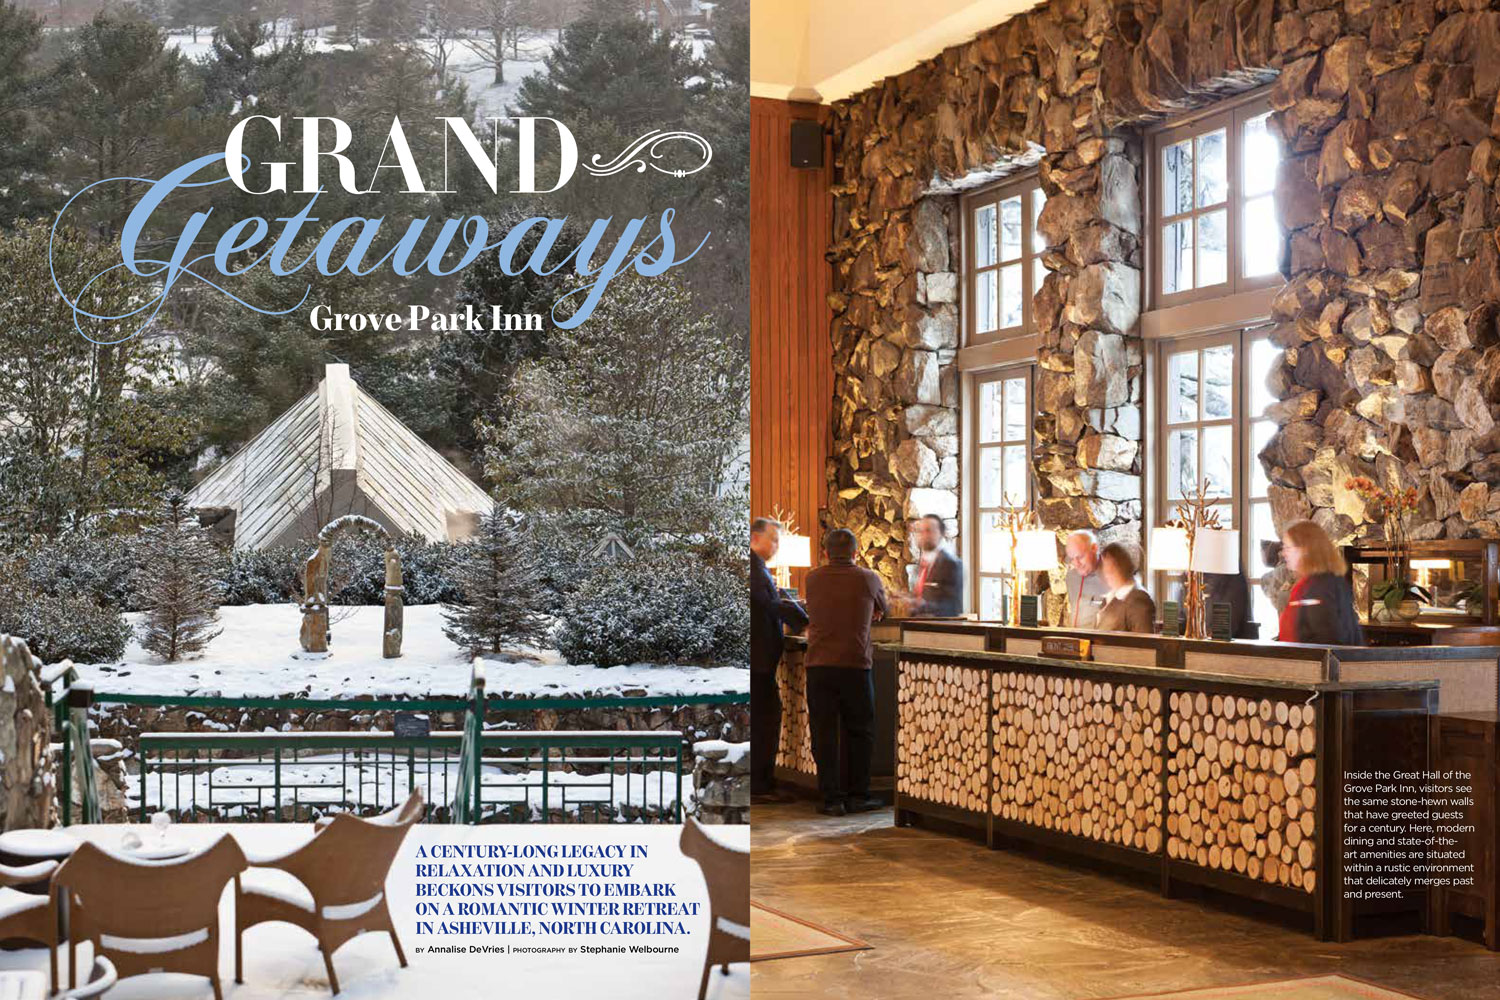 Inside the Great Hall of the Grove Park Inn, visitors see the same stone-hewn walls that have greeted guests for a century. Here, modern dining and state-of-the-art amenities are situated within a rustic environment that delicately merges past and present.